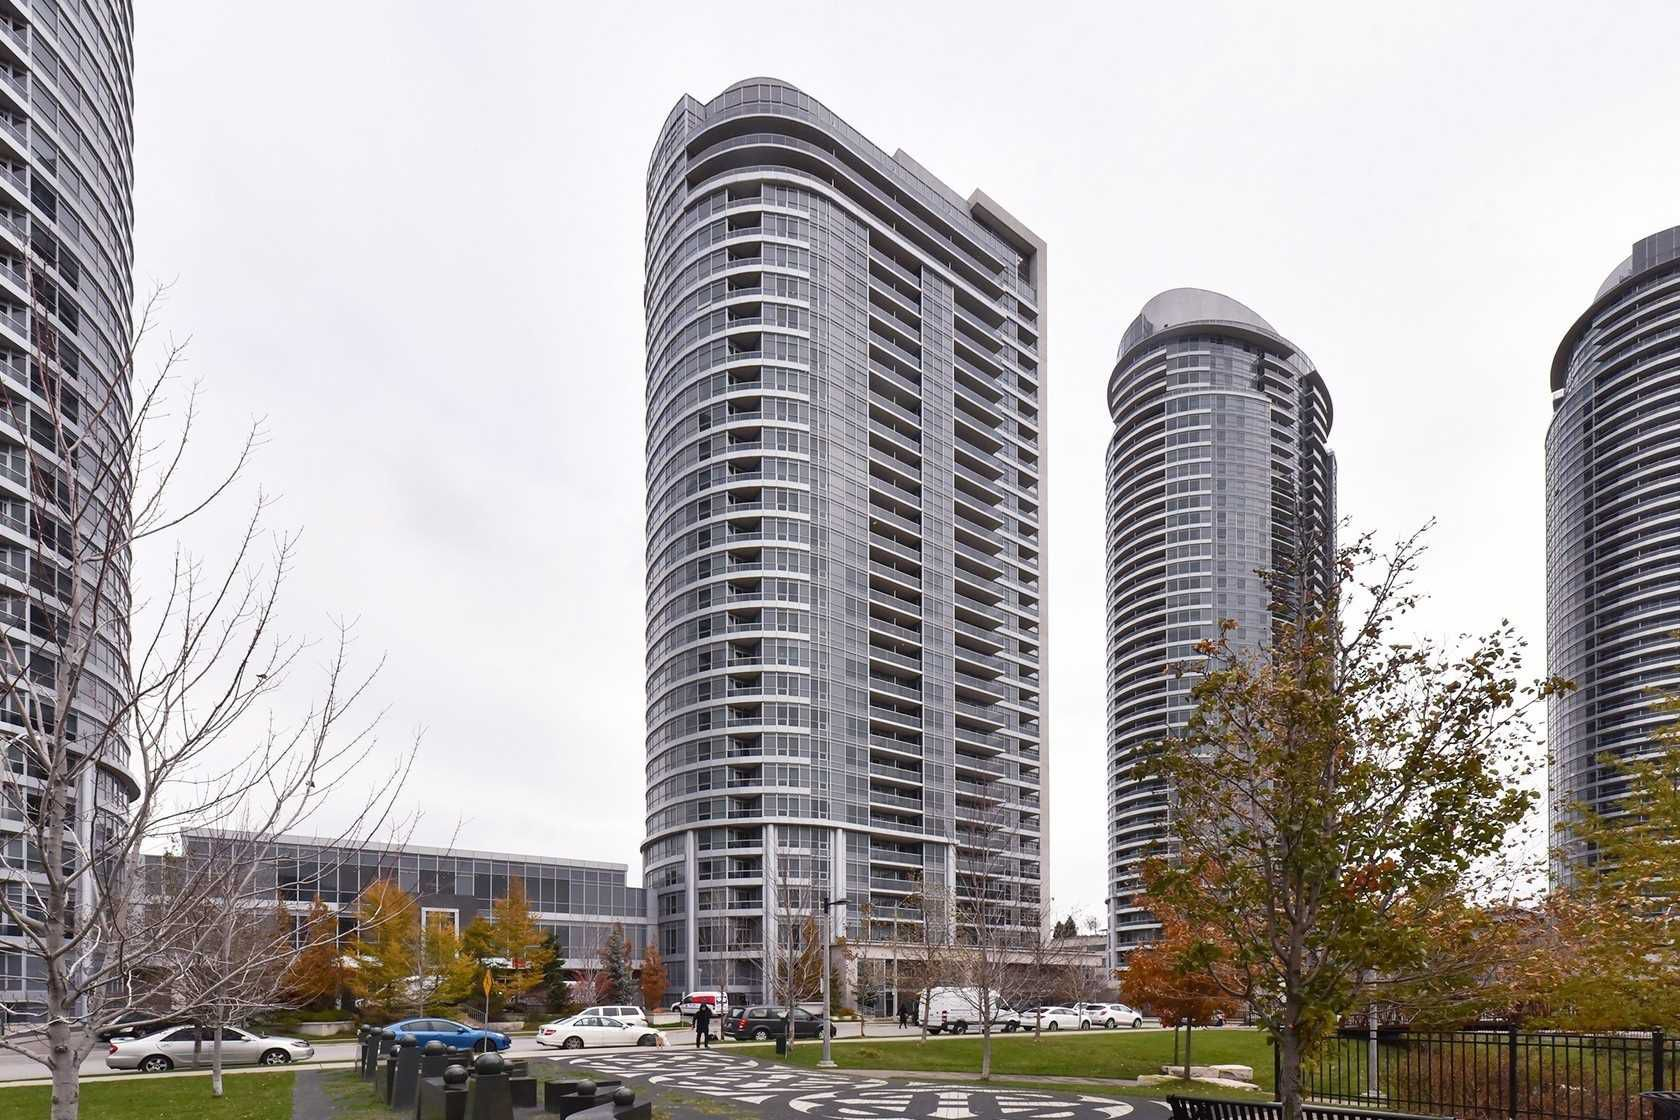 Main Photo: 1707 151 Village Green Square in Toronto: Agincourt South-Malvern West Condo for sale (Toronto E07)  : MLS®# E4304064